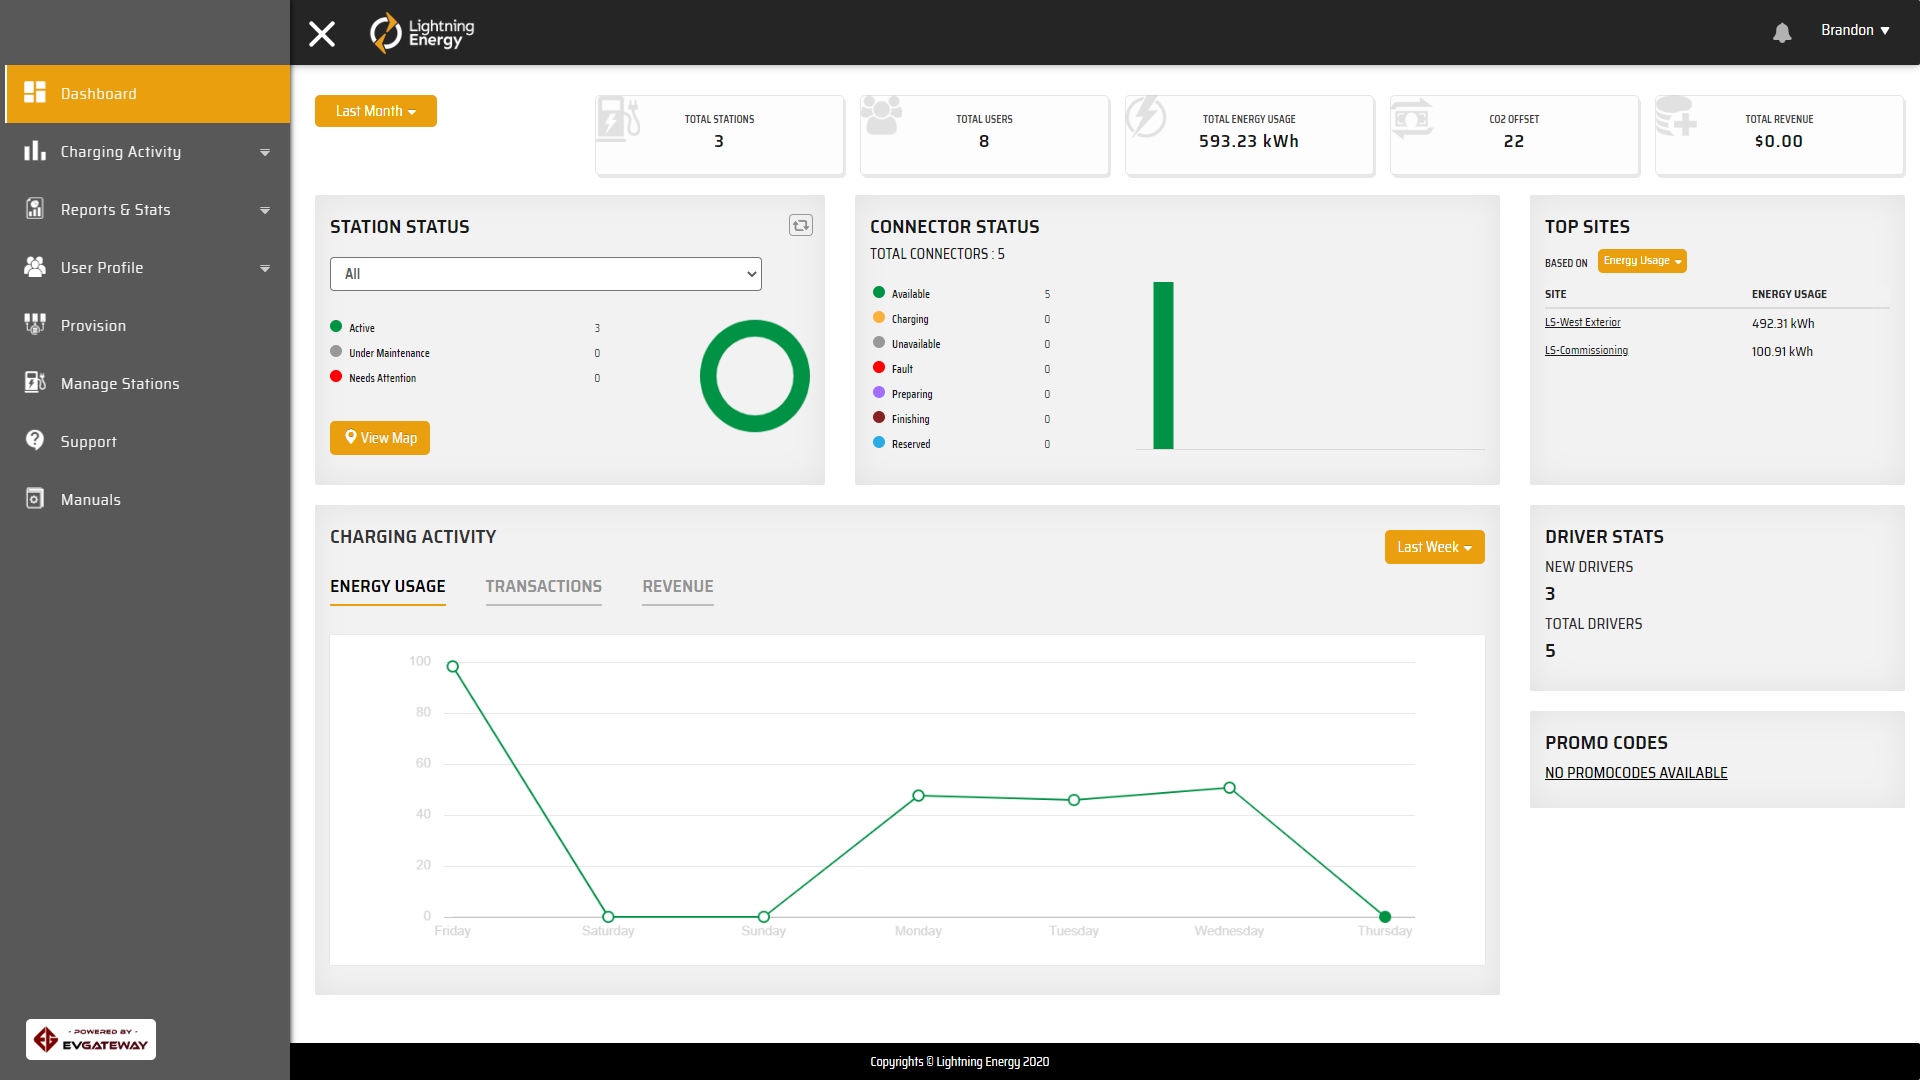 The customizable dashboard provides at-a-glance information